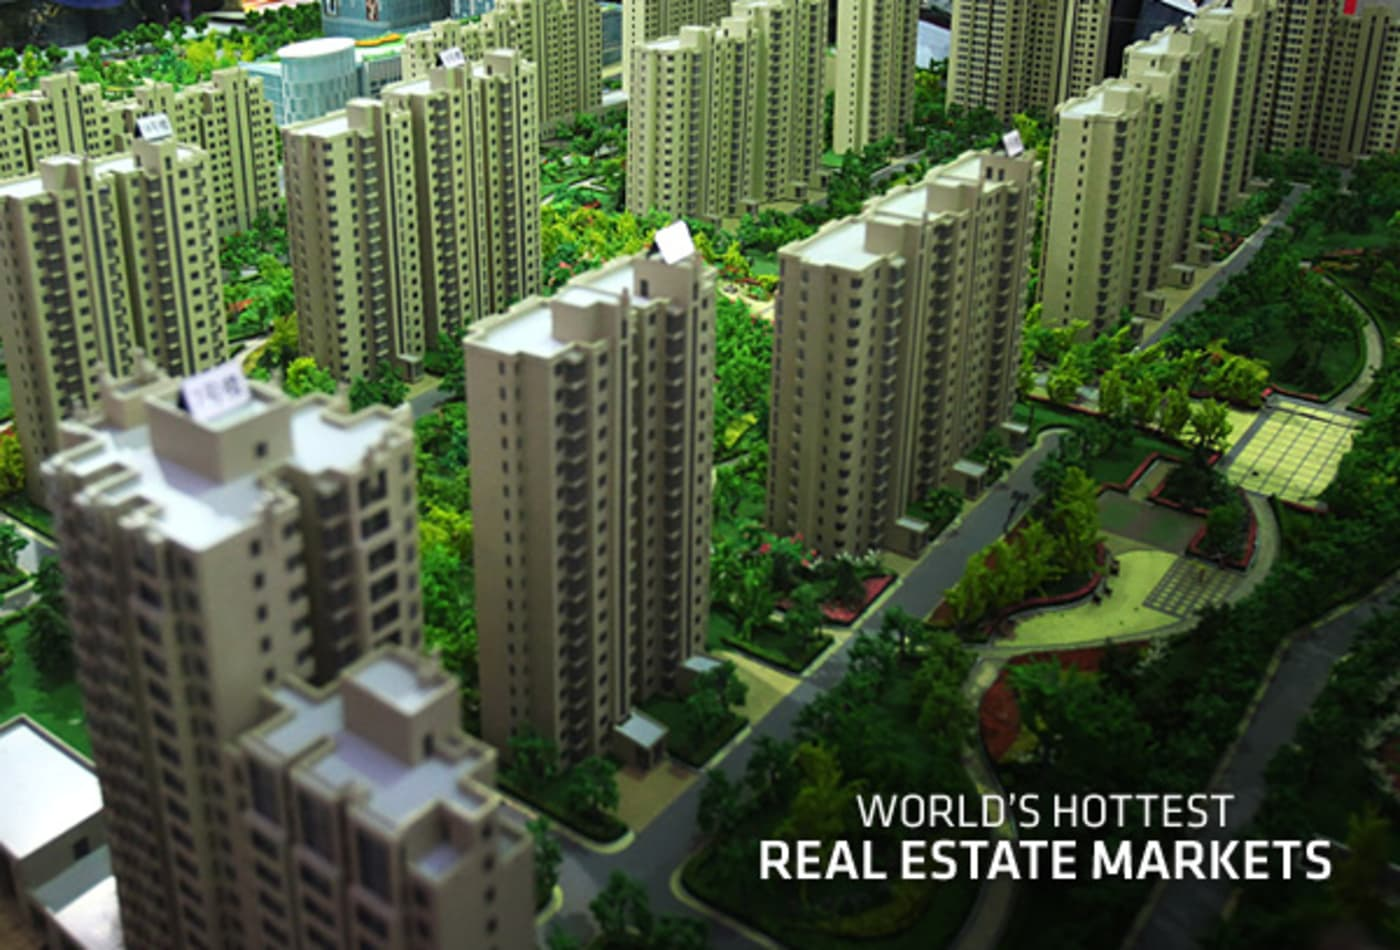 Fastest-growing-property-markets-cover2.jpg